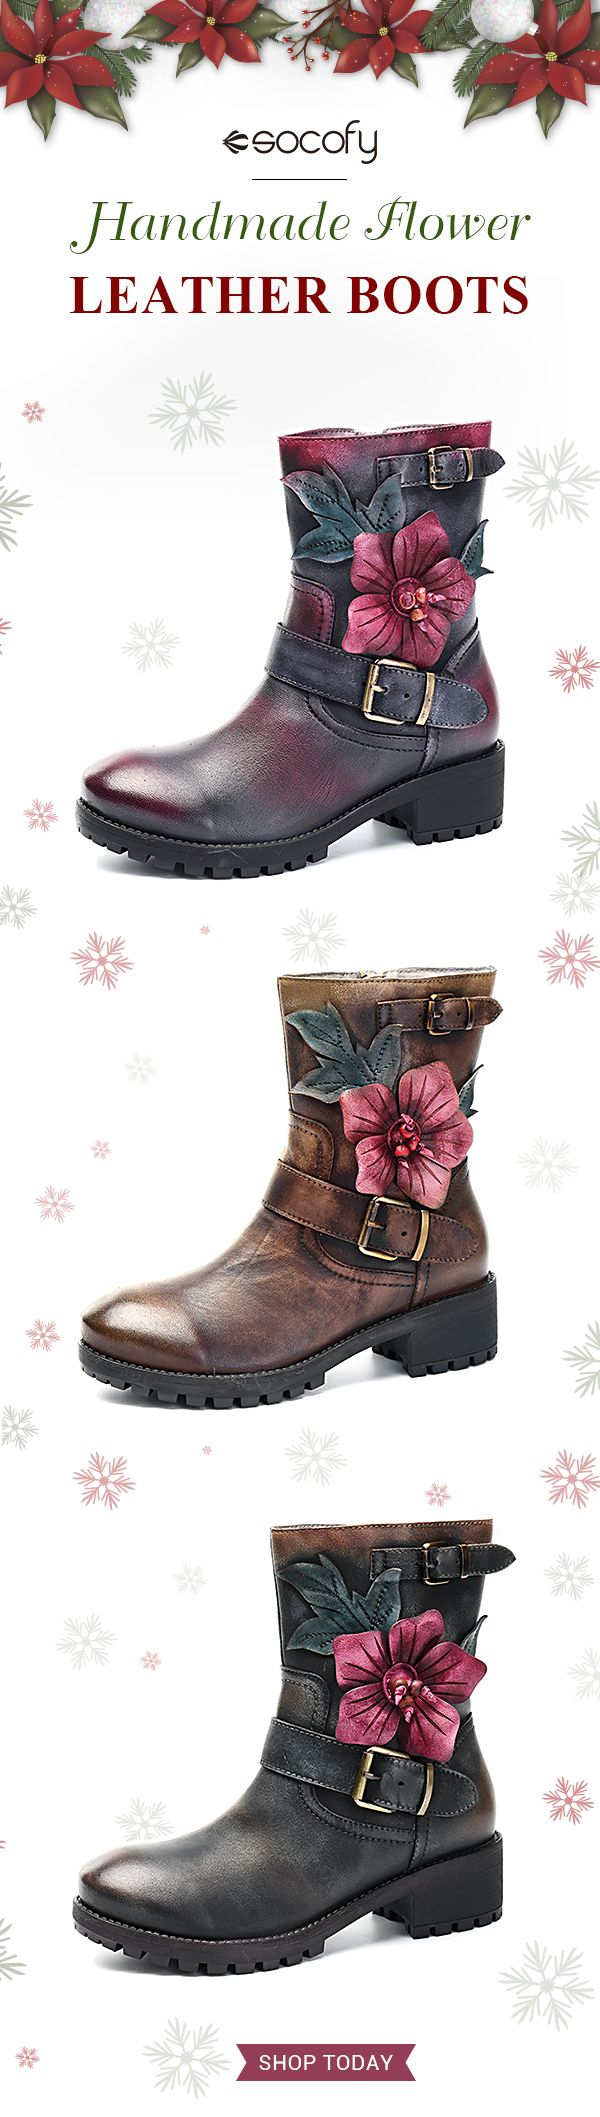 best shoes images on pinterest retro shoes vintage shoes and